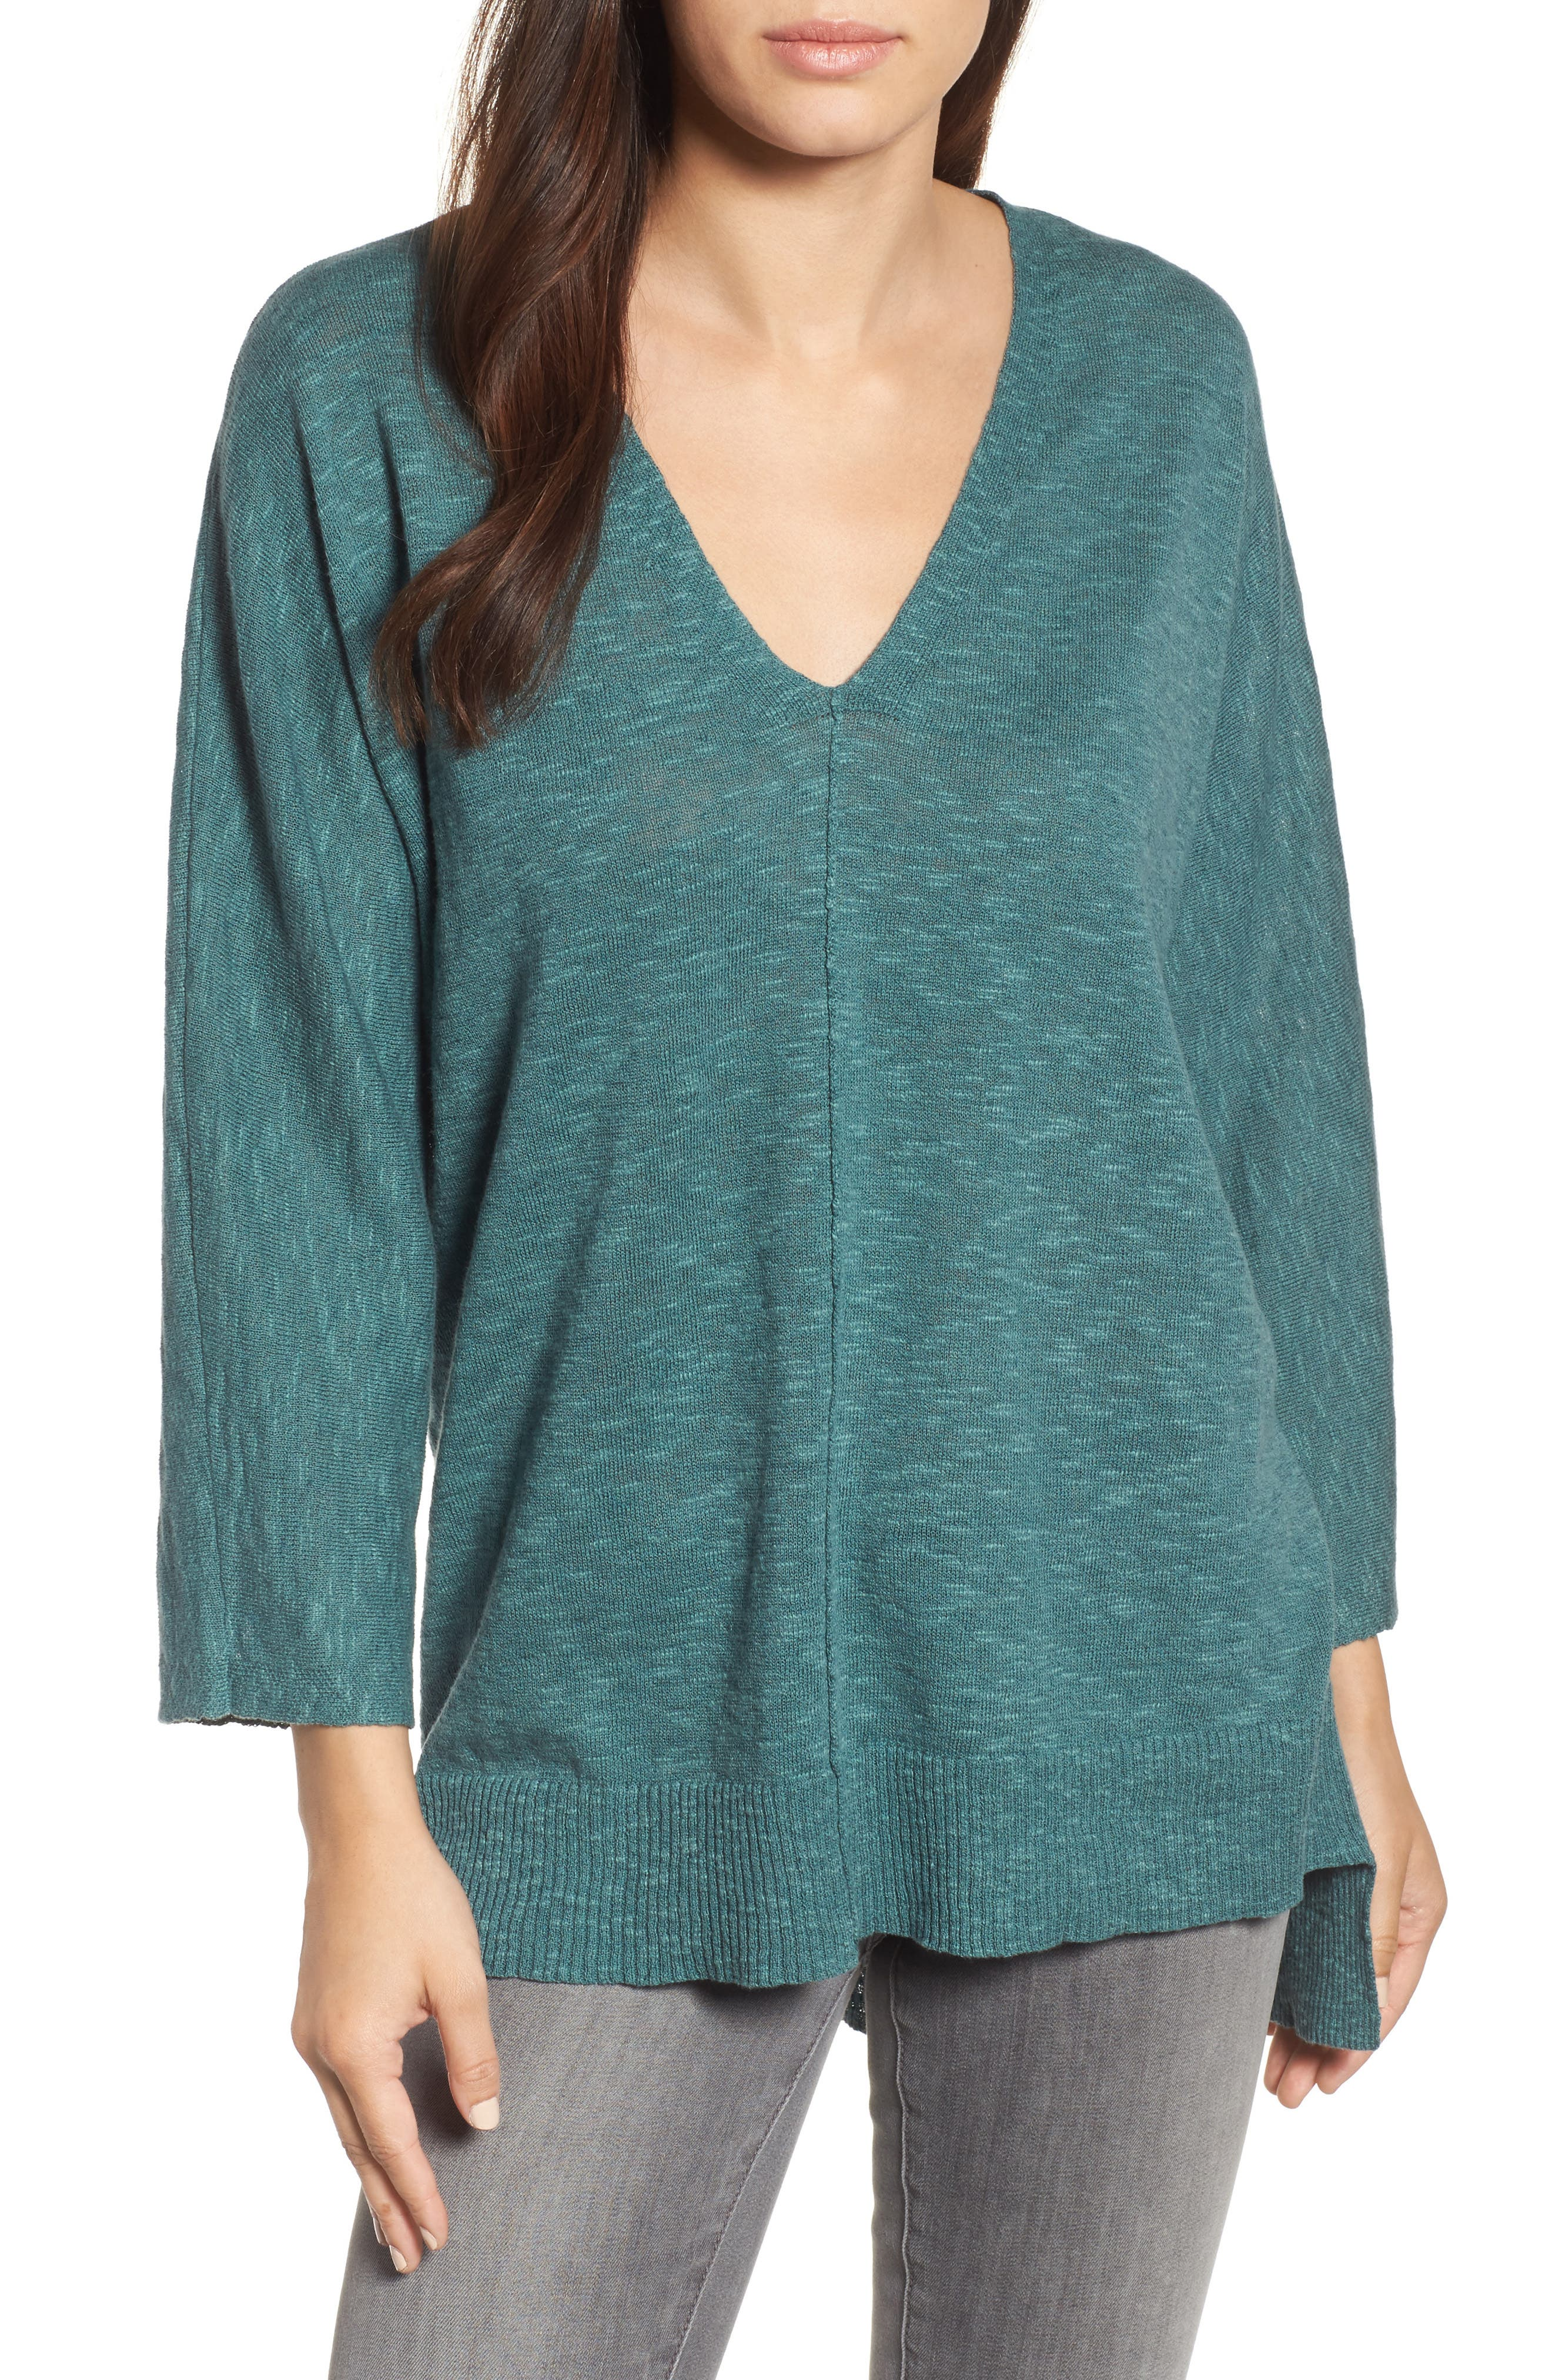 Organic Linen & Cotton Sweater,                         Main,                         color, Teal